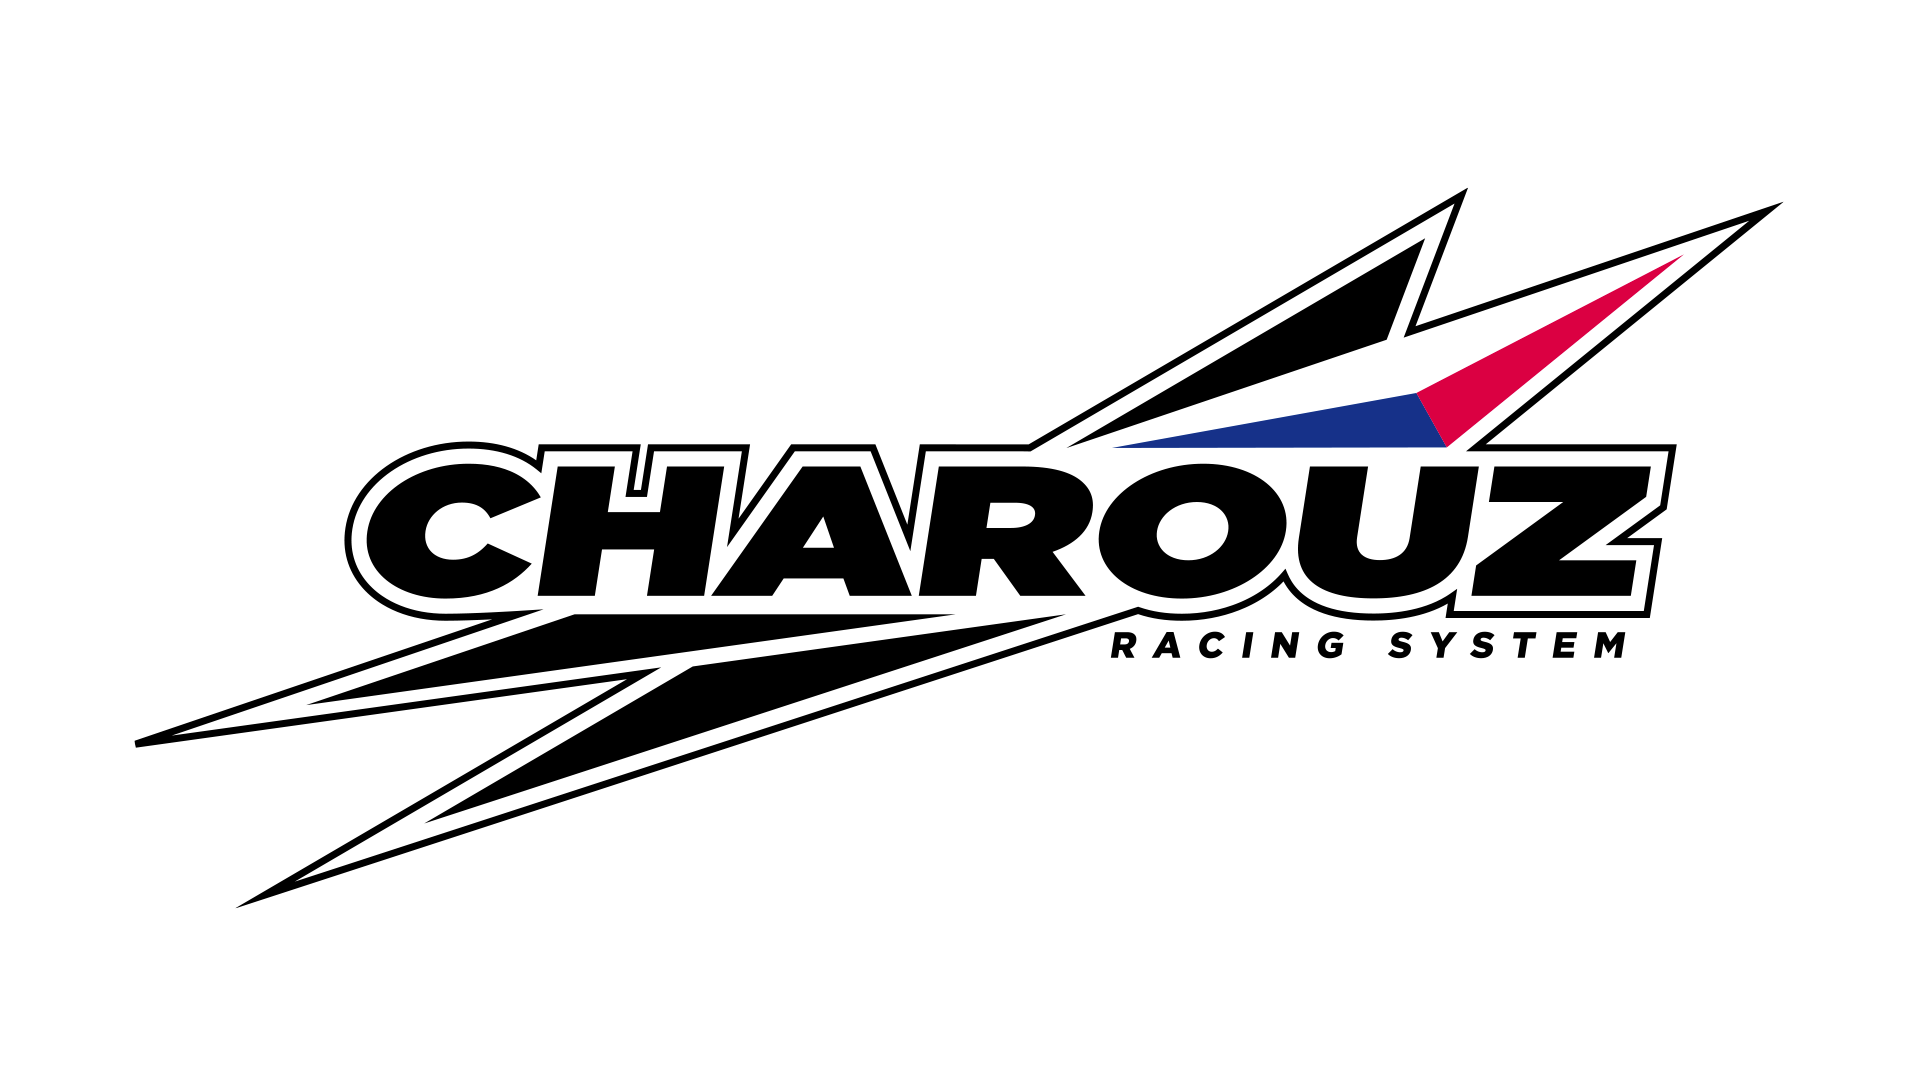 Charouz Racing System Teams Background 3